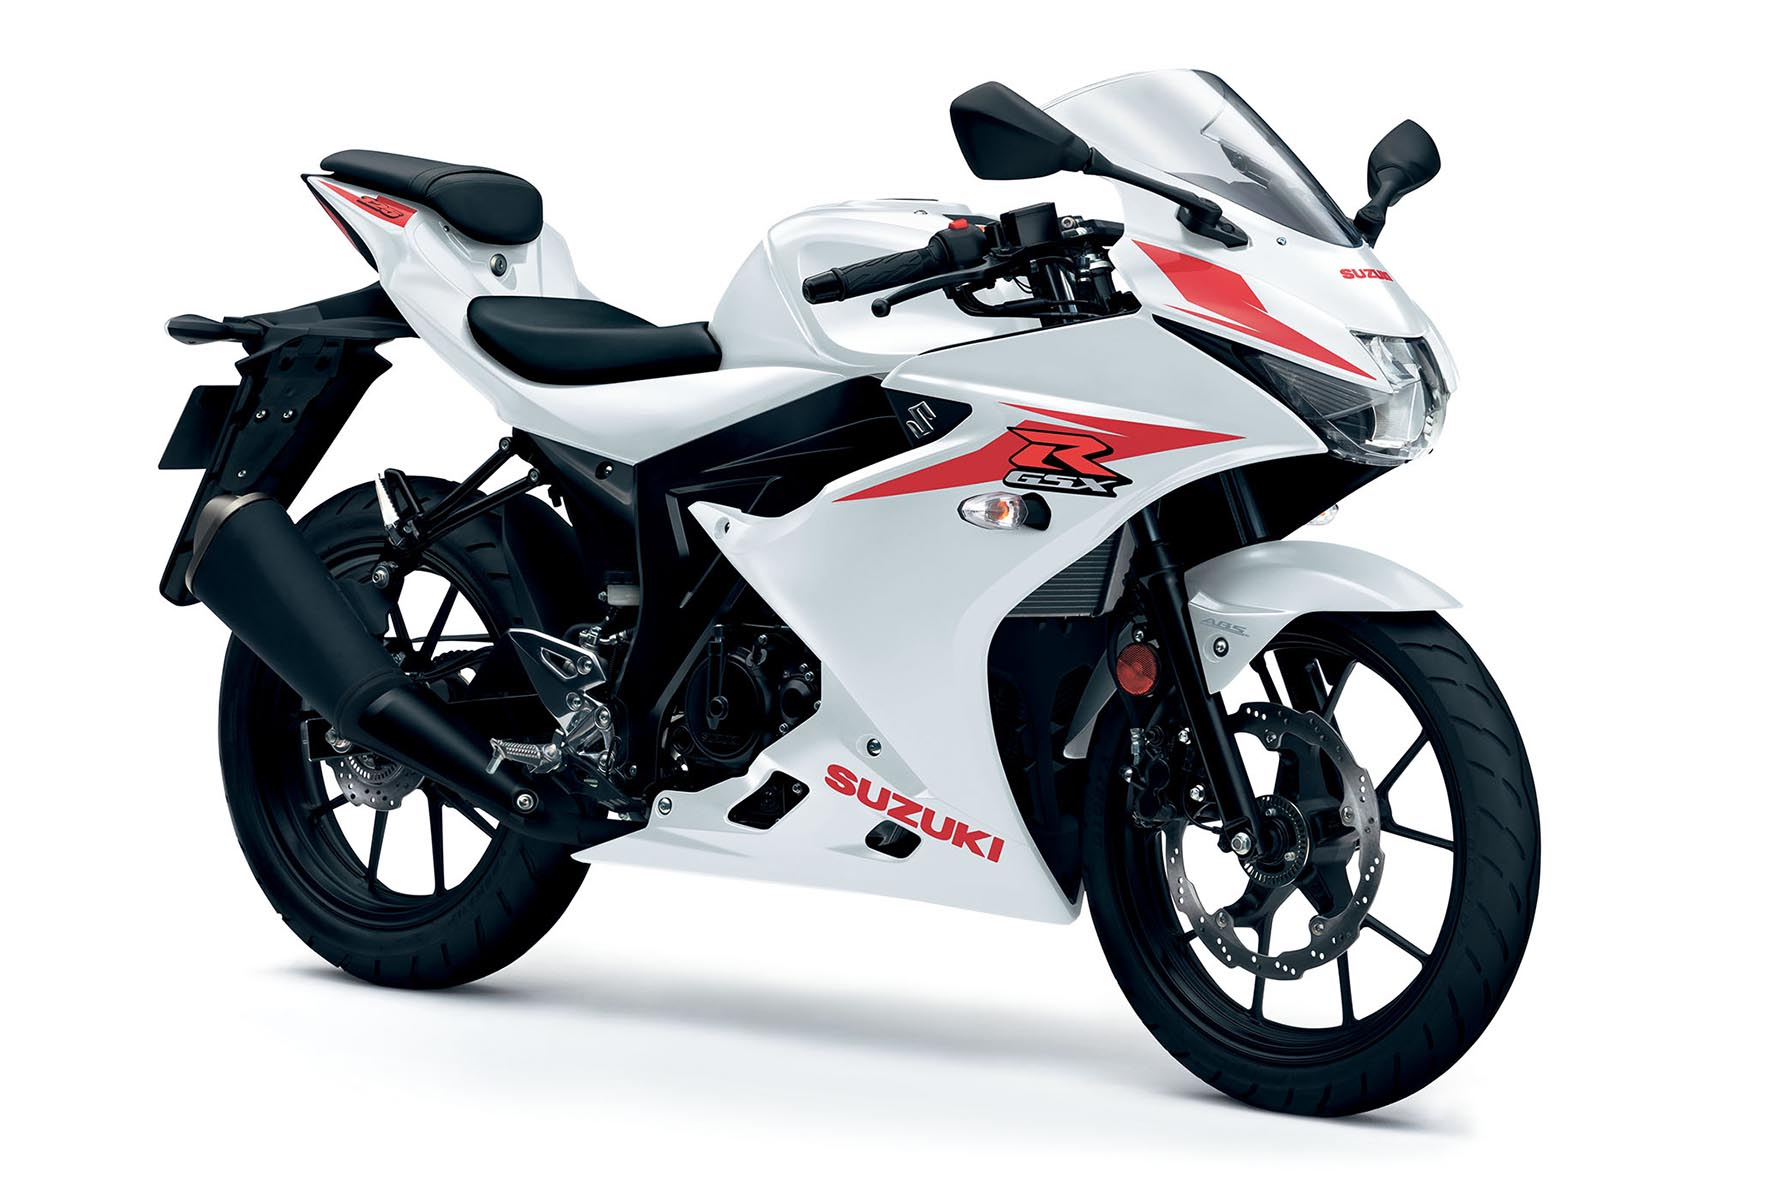 Suzuki GSX-R125 ABS UK Warna Putih p7